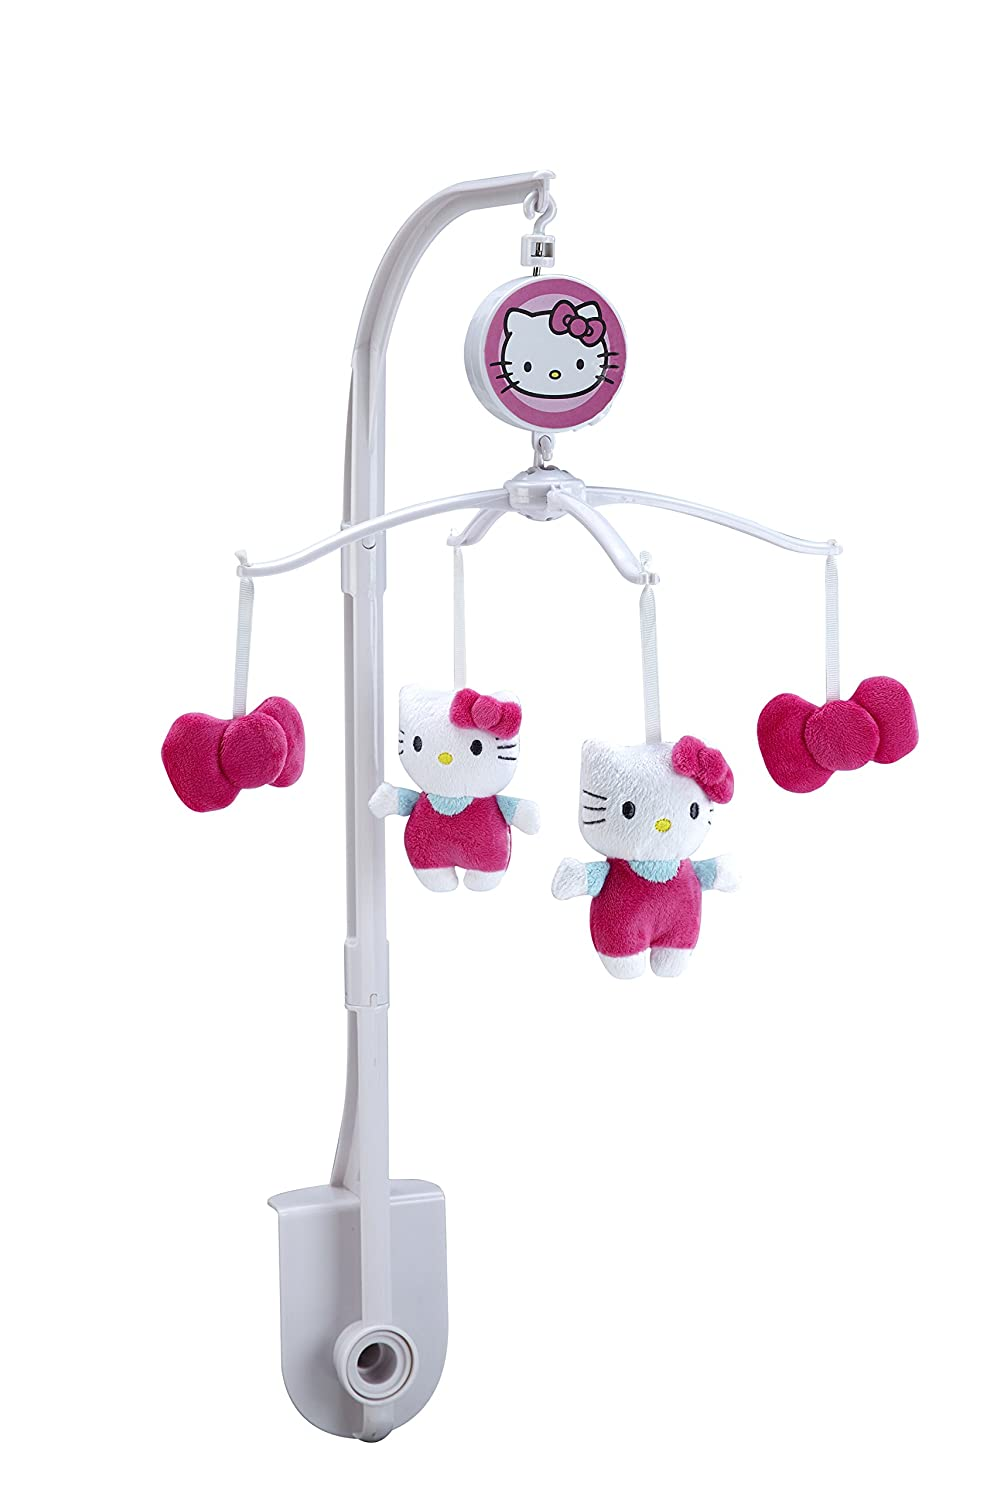 Sanrio Hello Kitty Cute as A Button, Musical Mobile/Pink/White Crown Crafts Infant Products Inc. 6731079